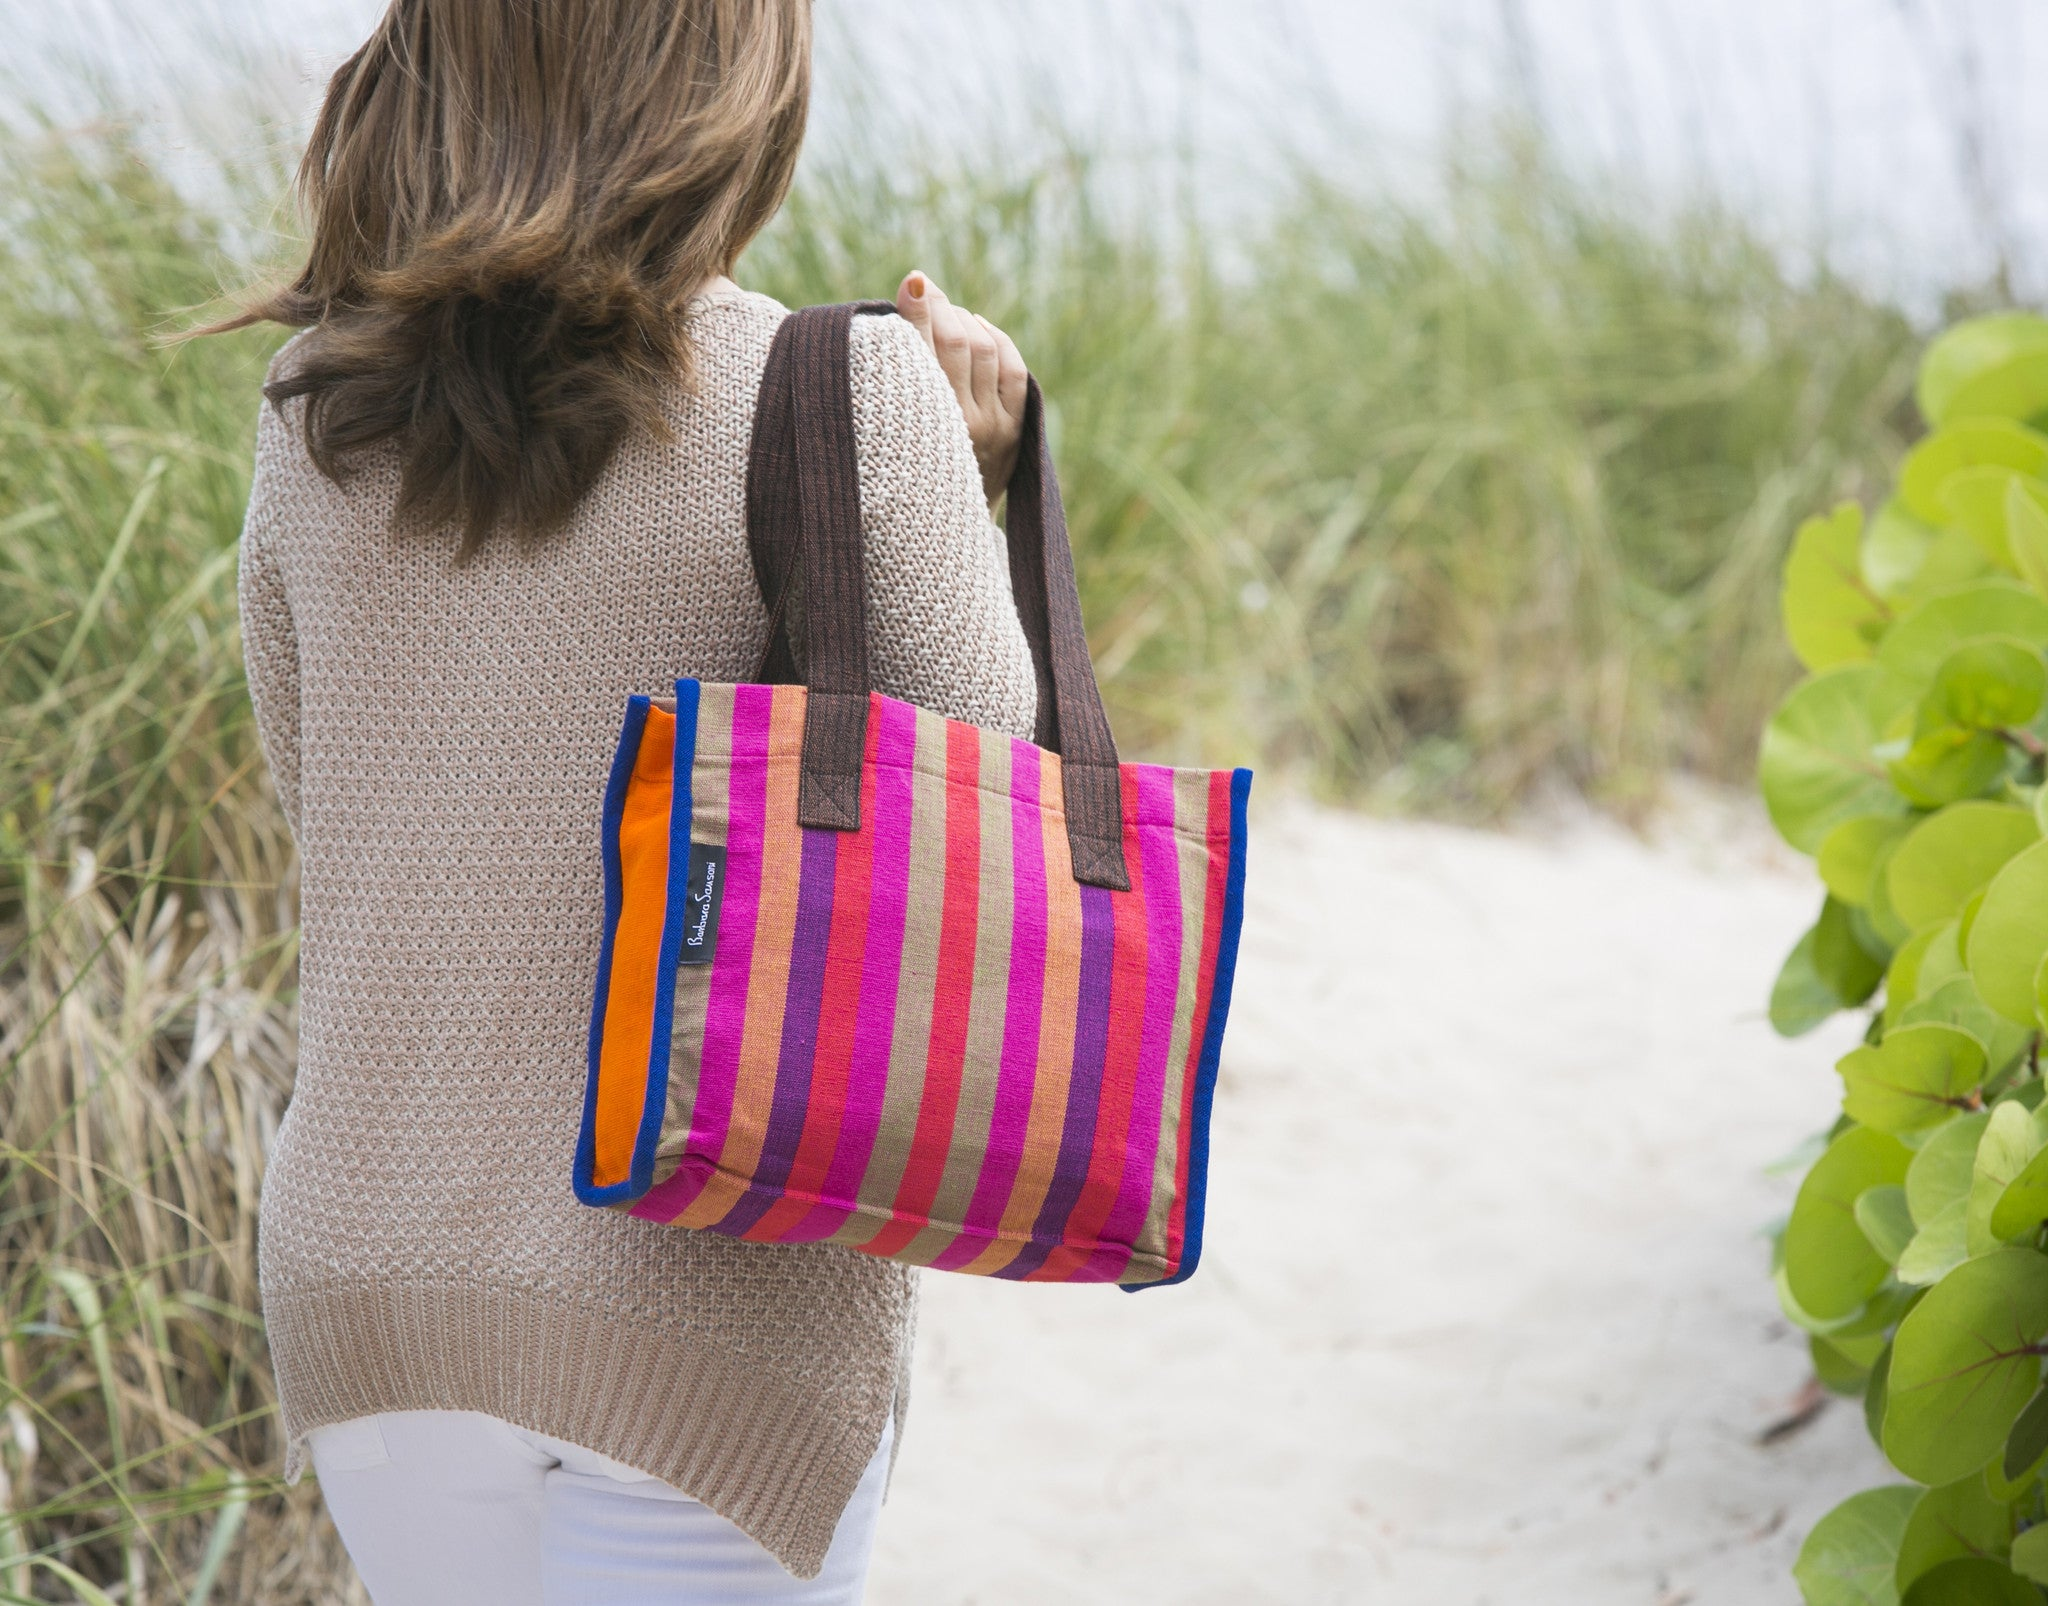 The Easy Breezy Tote - Great for a day at the beach! (sample fabric shown)